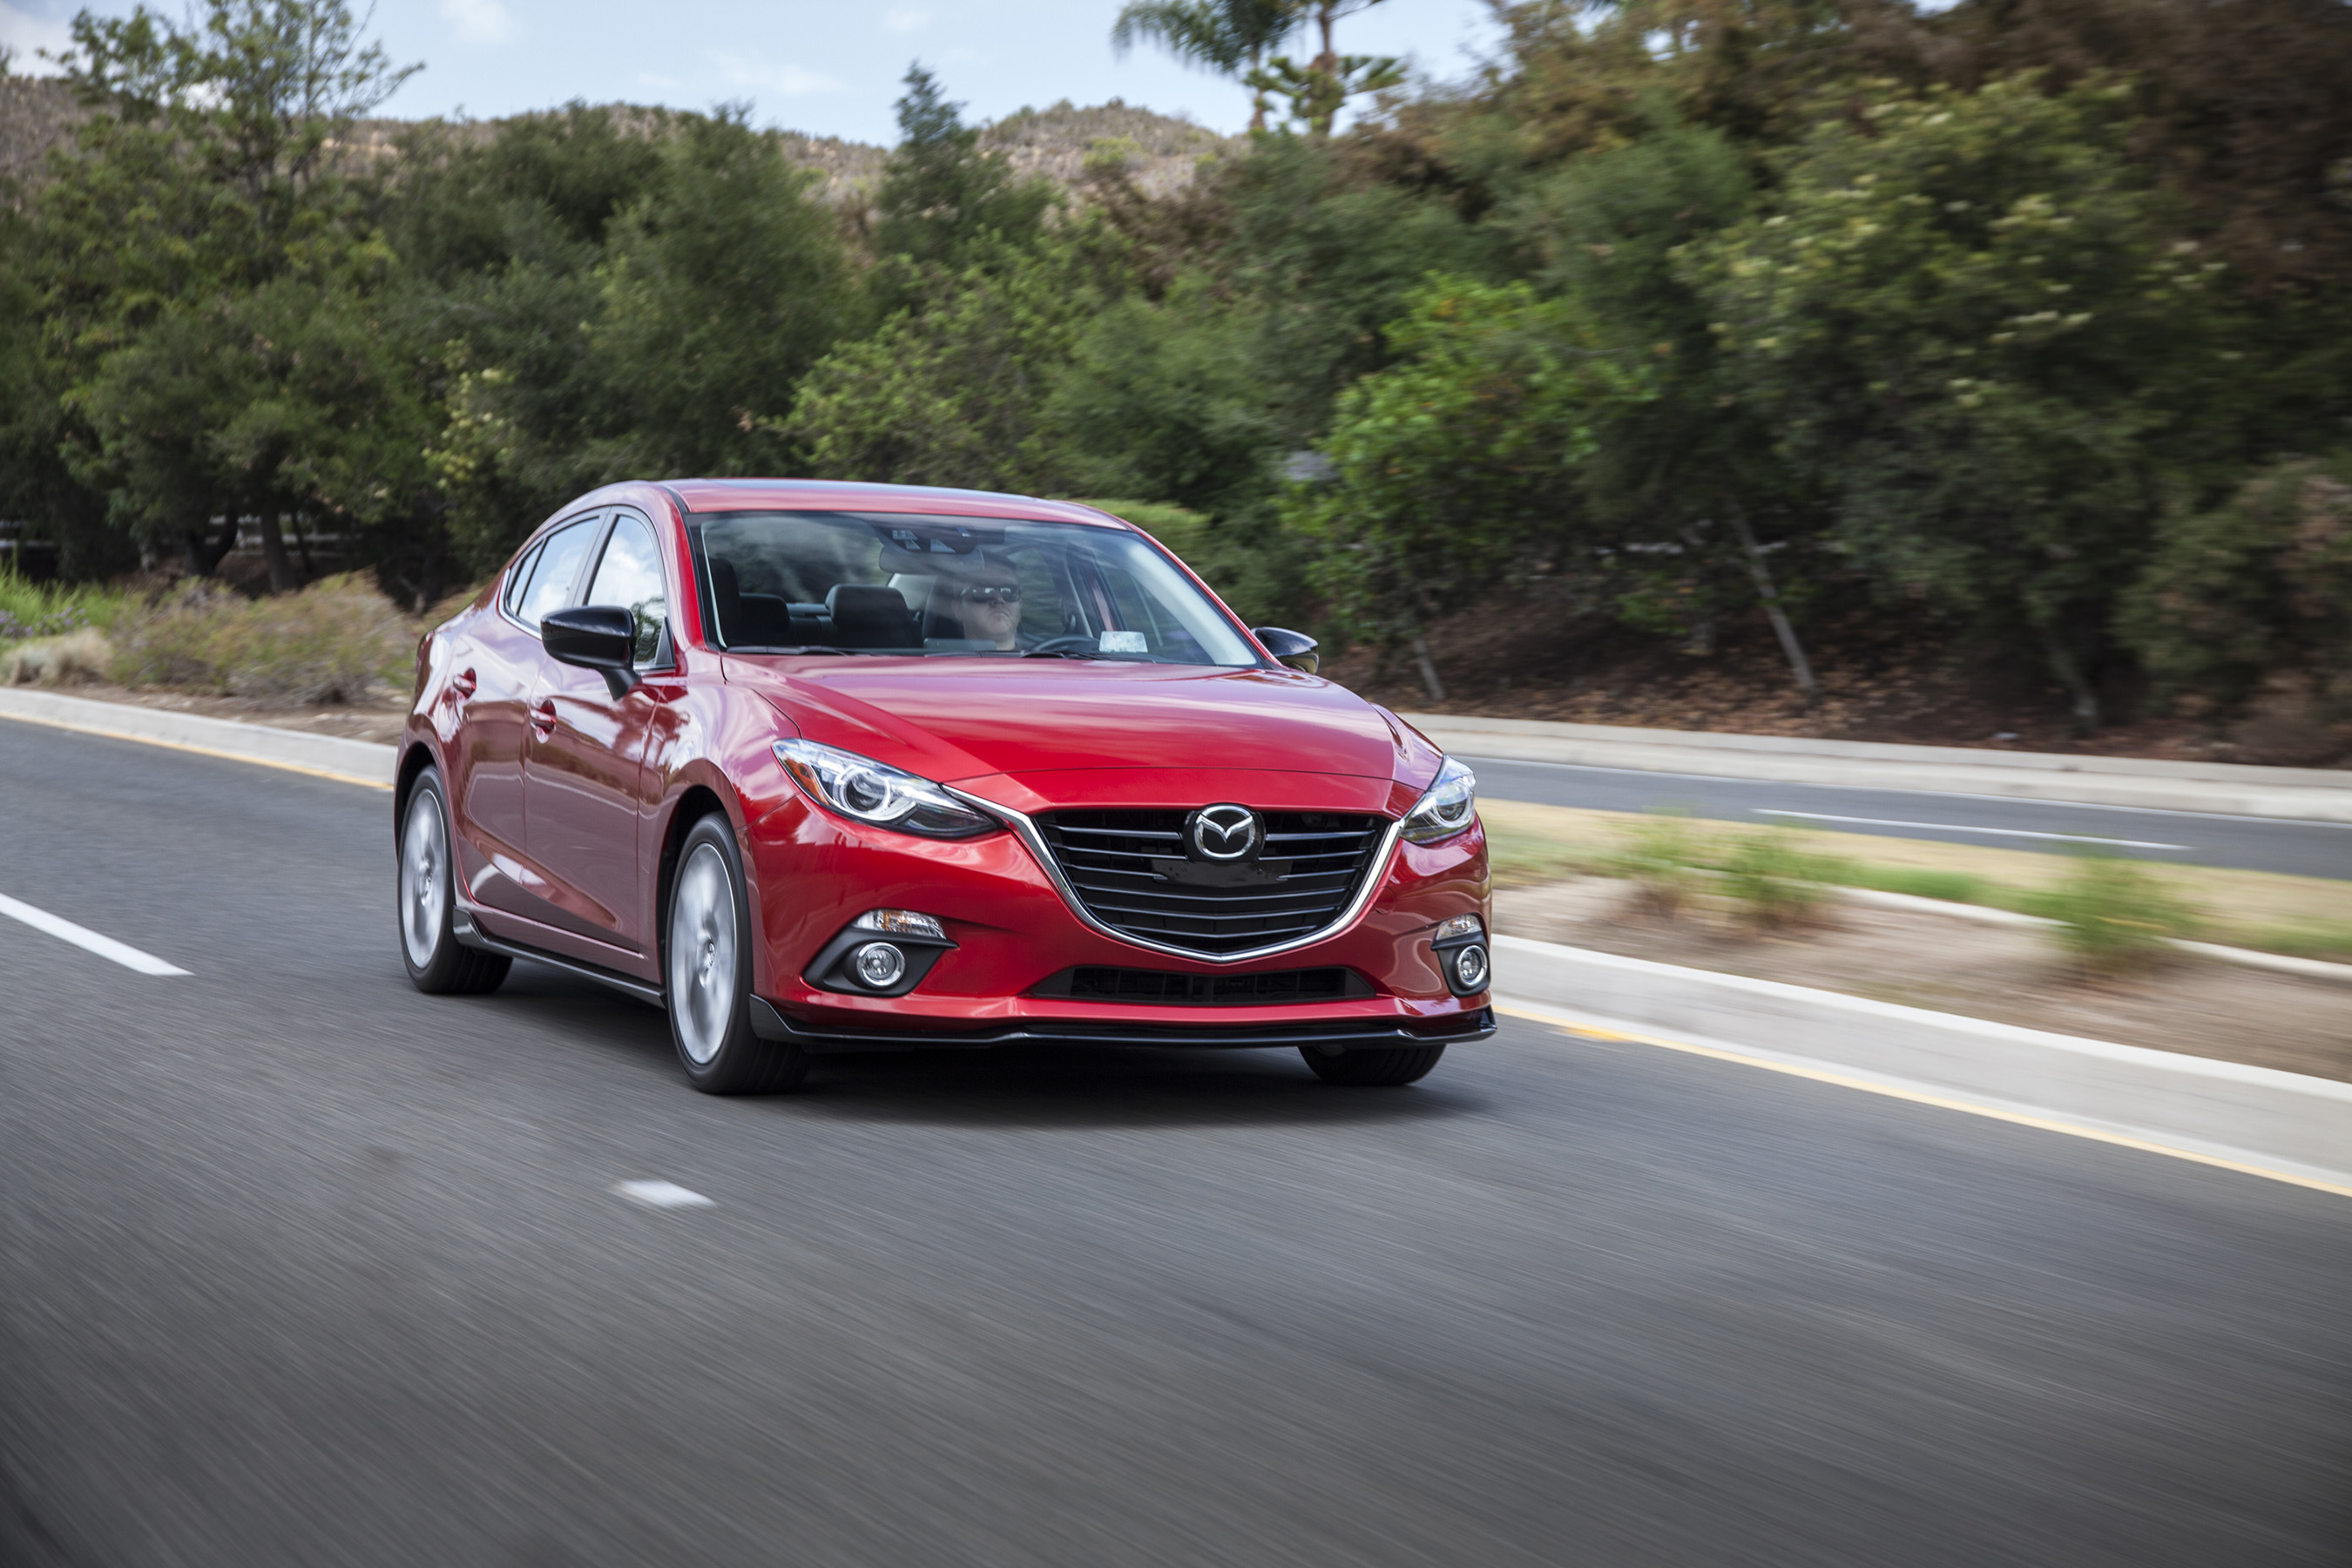 KBB.com 10 Coolest Cars: Gorgeous and sporty outside, as well as inside, the Mazda3 has been named one of our 10 Coolest Cars Under $18,000 every year of its existence.